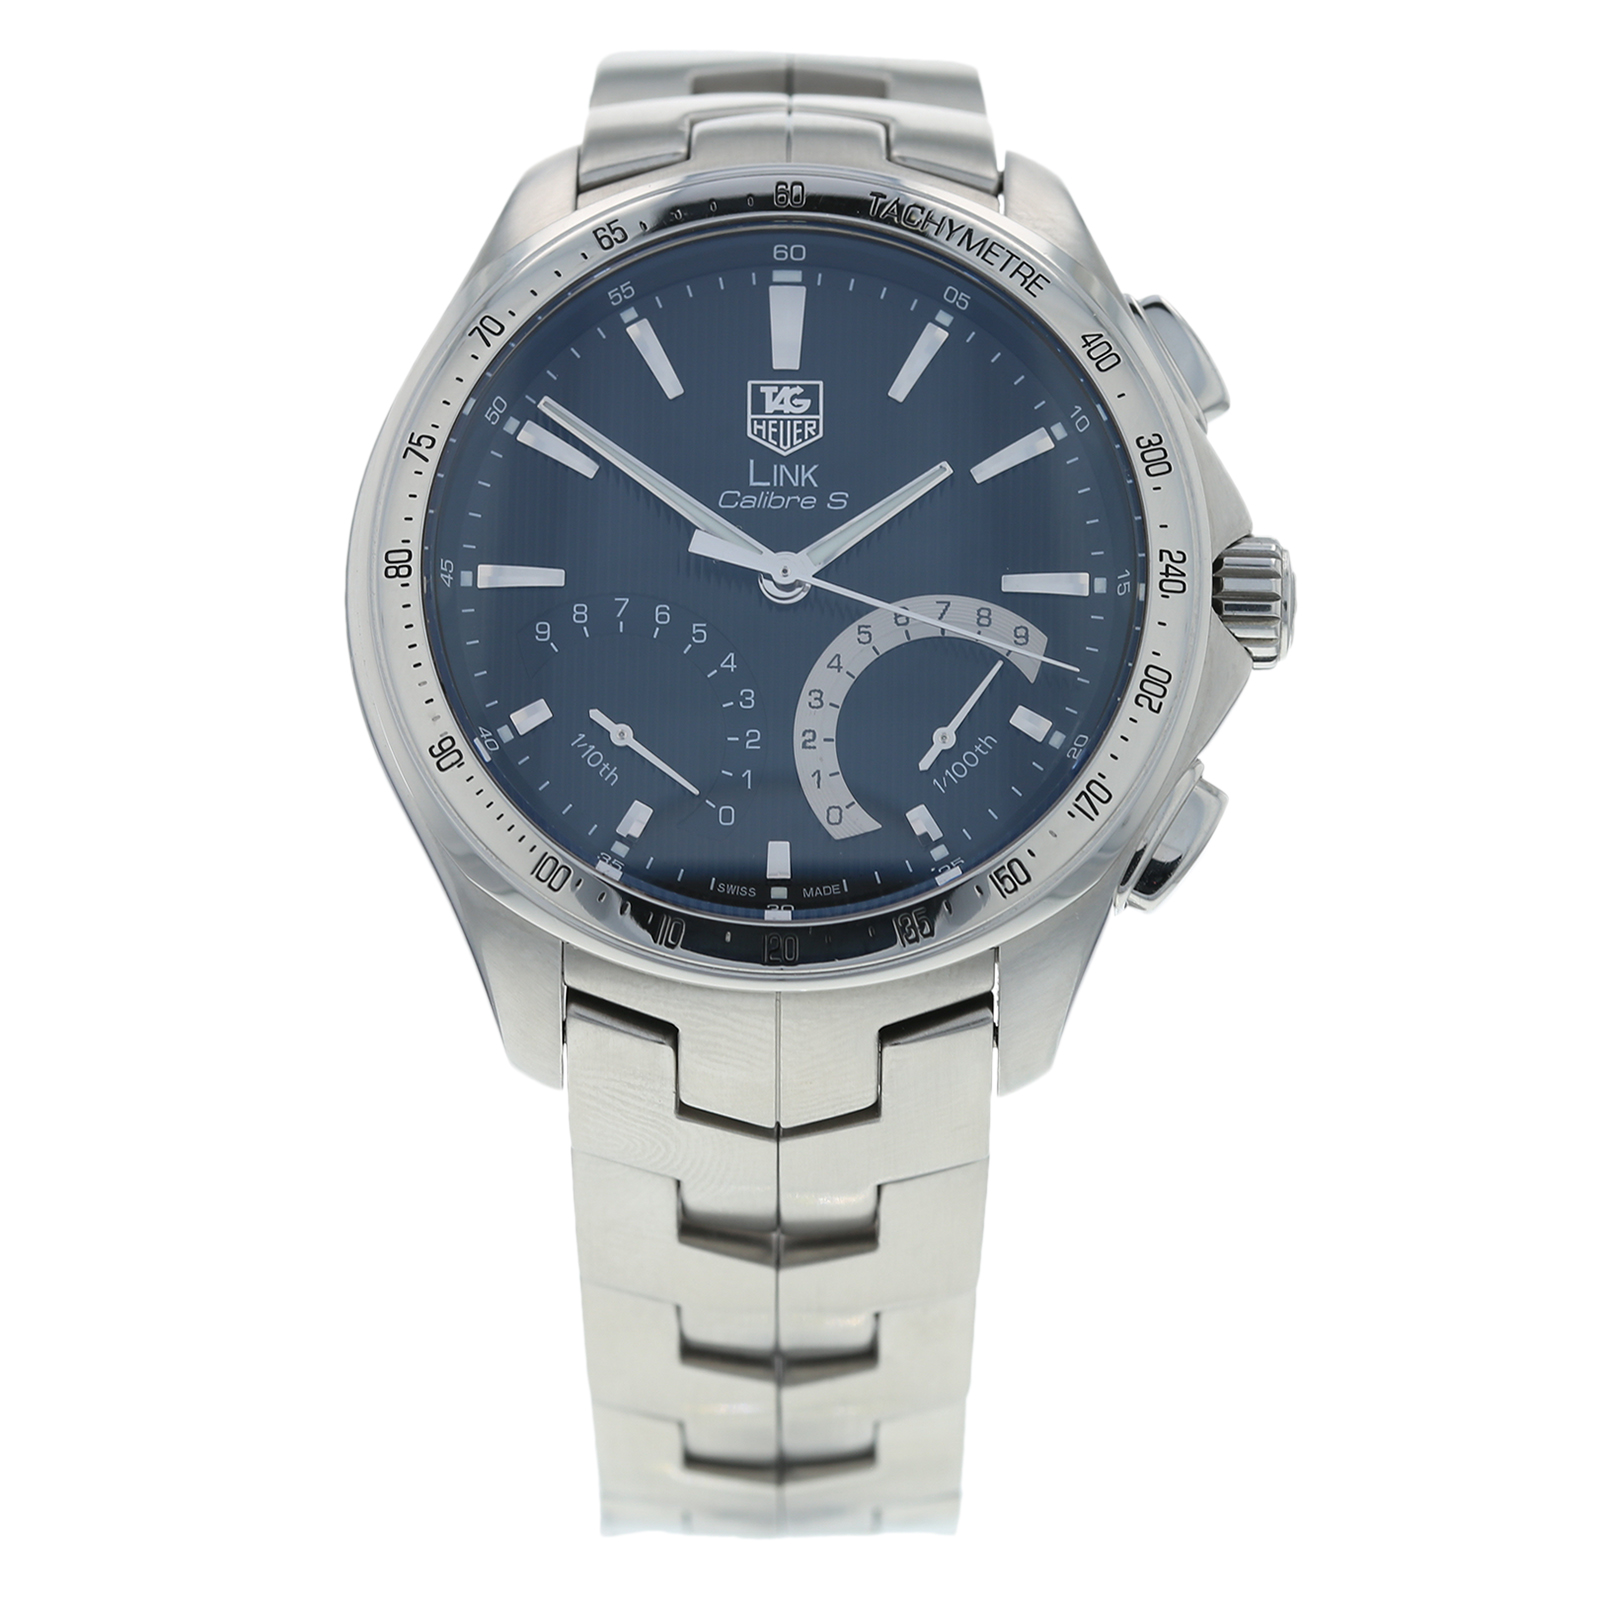 6c80c1e048b Pre-Owned TAG Heuer Link Calibre S Mens Watch CAT7010 | Pre Owned Watches |  Goldsmiths